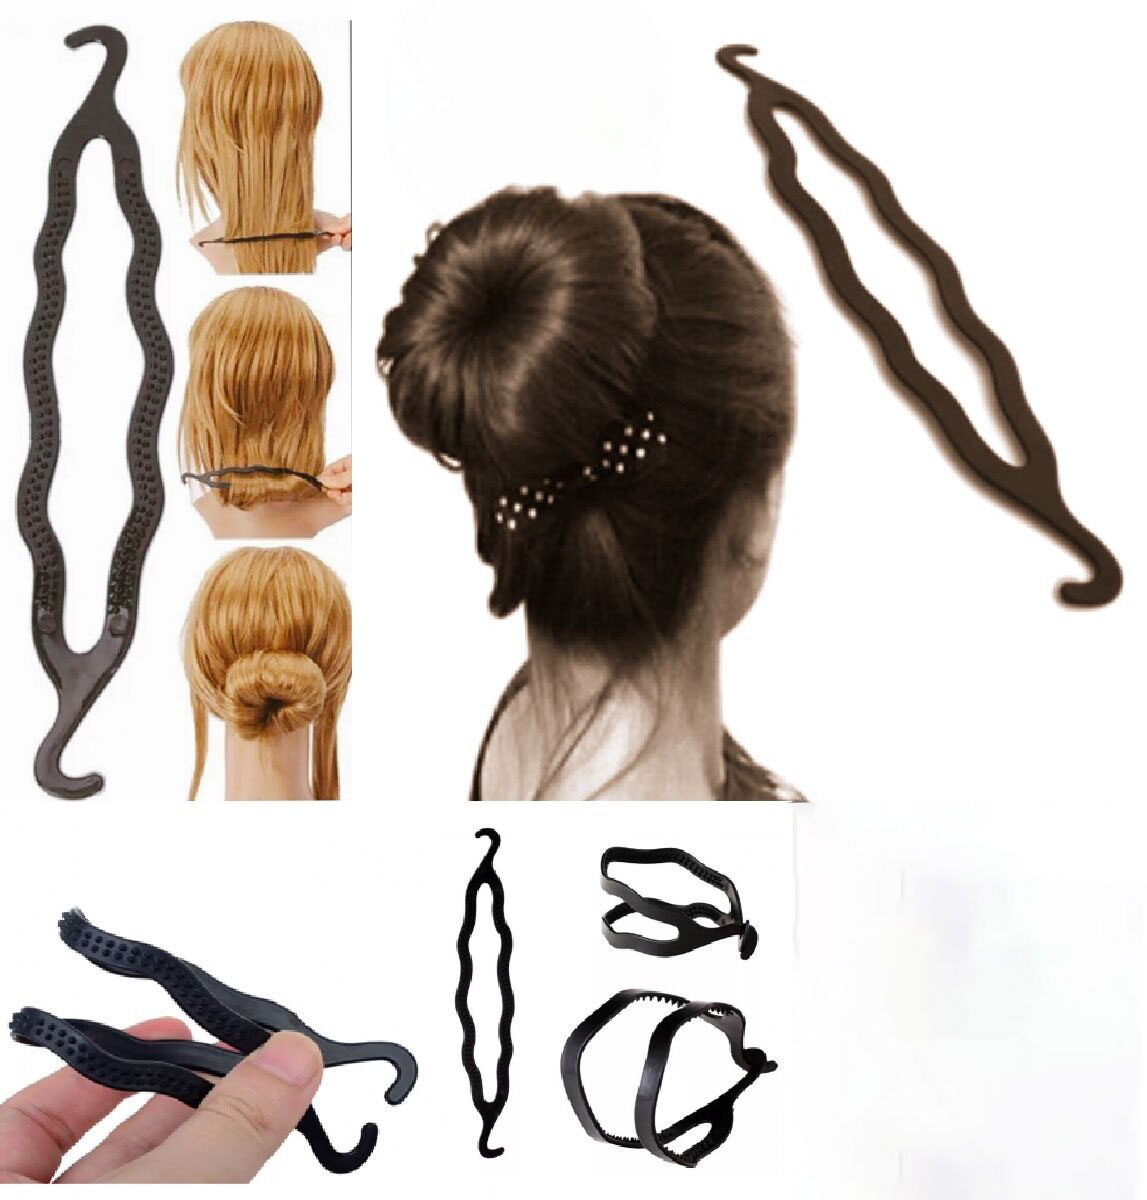 Brand new high quality hair donut buns plastic twist bar double hook hair artifact spherical ball head braider